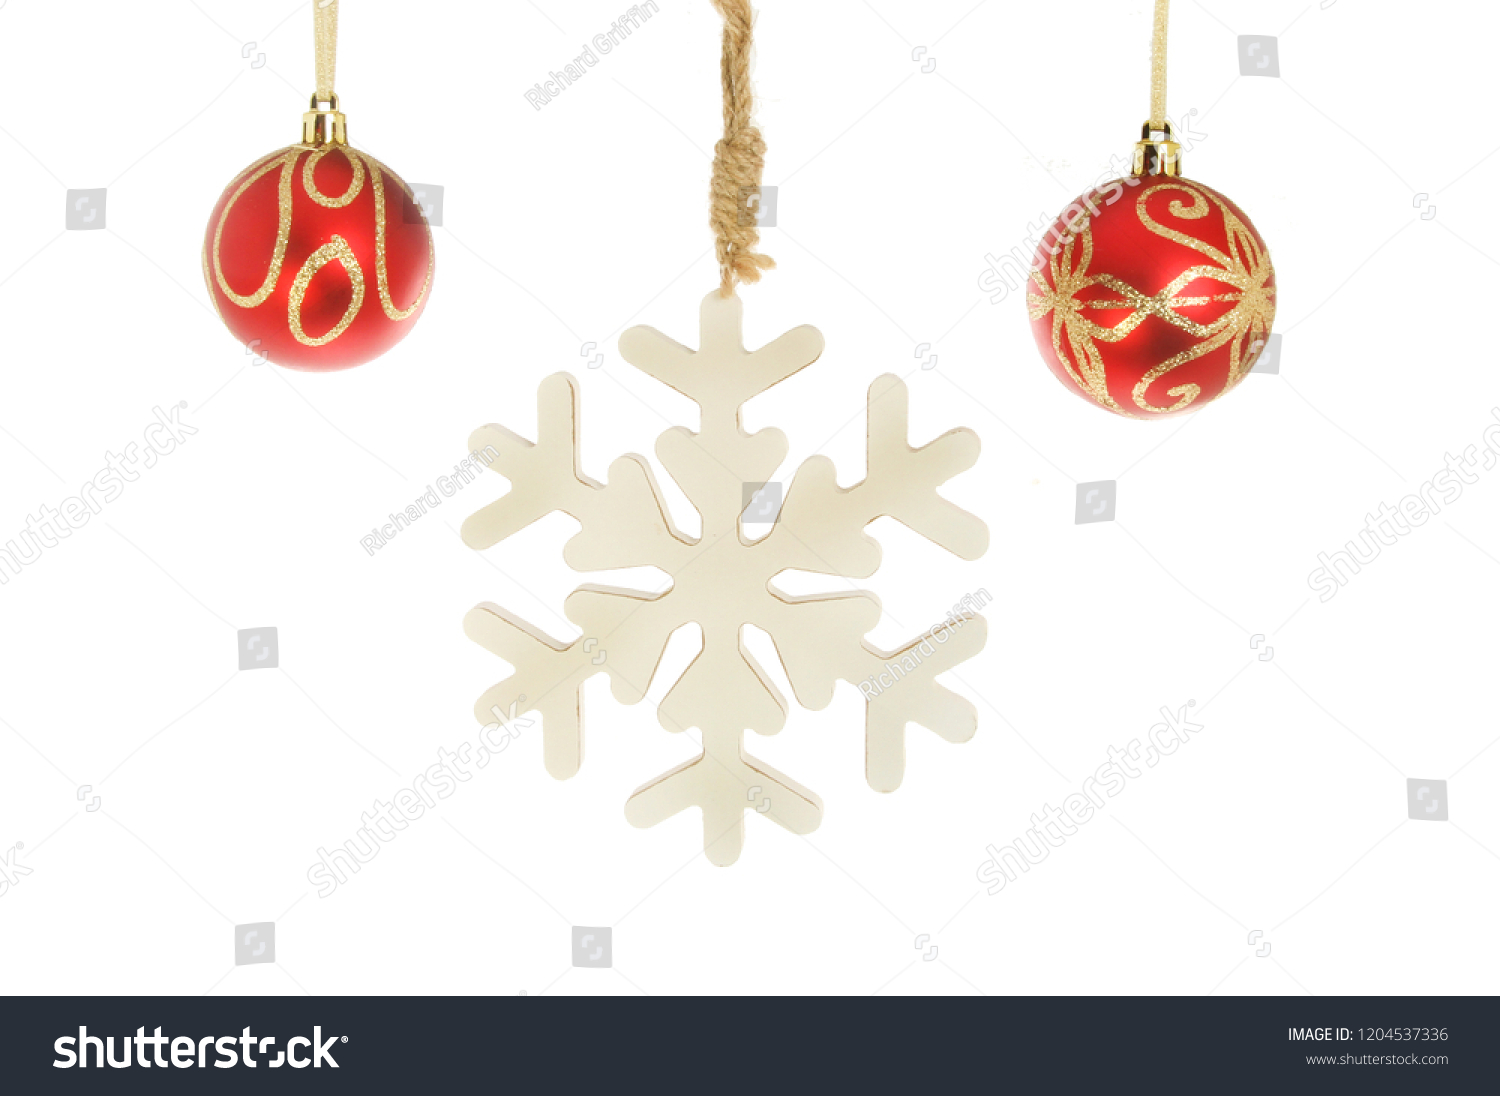 a0116d93f0e7 Christmas decorations, red and gold glitter baubles hanging with a  snowflake decoration isolated against white